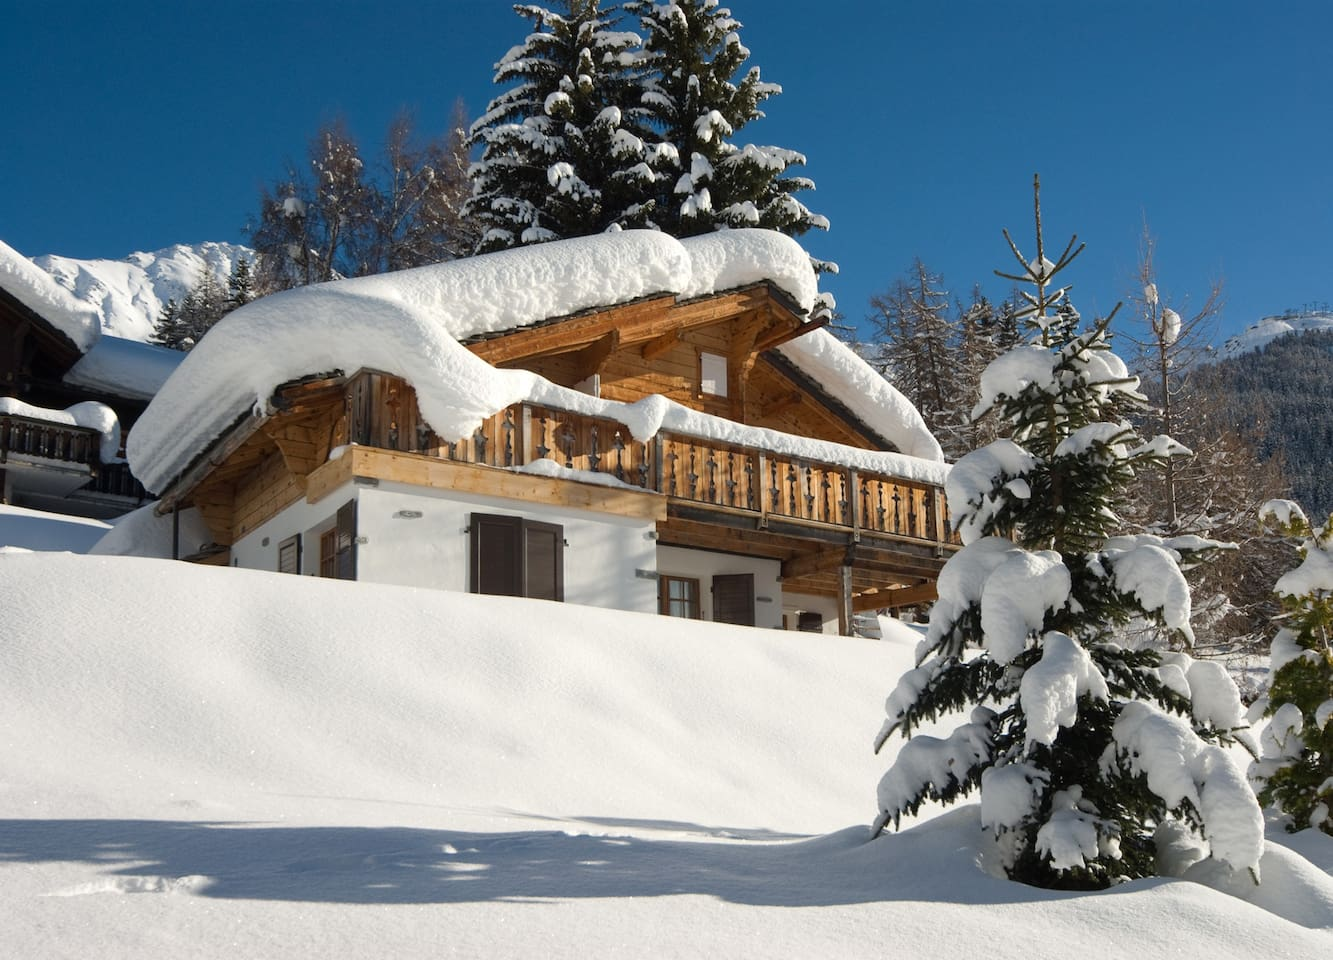 Ski In/Out, located on slopes yet only a 2,3 minute walk to the road and a 10 minute walk to the village